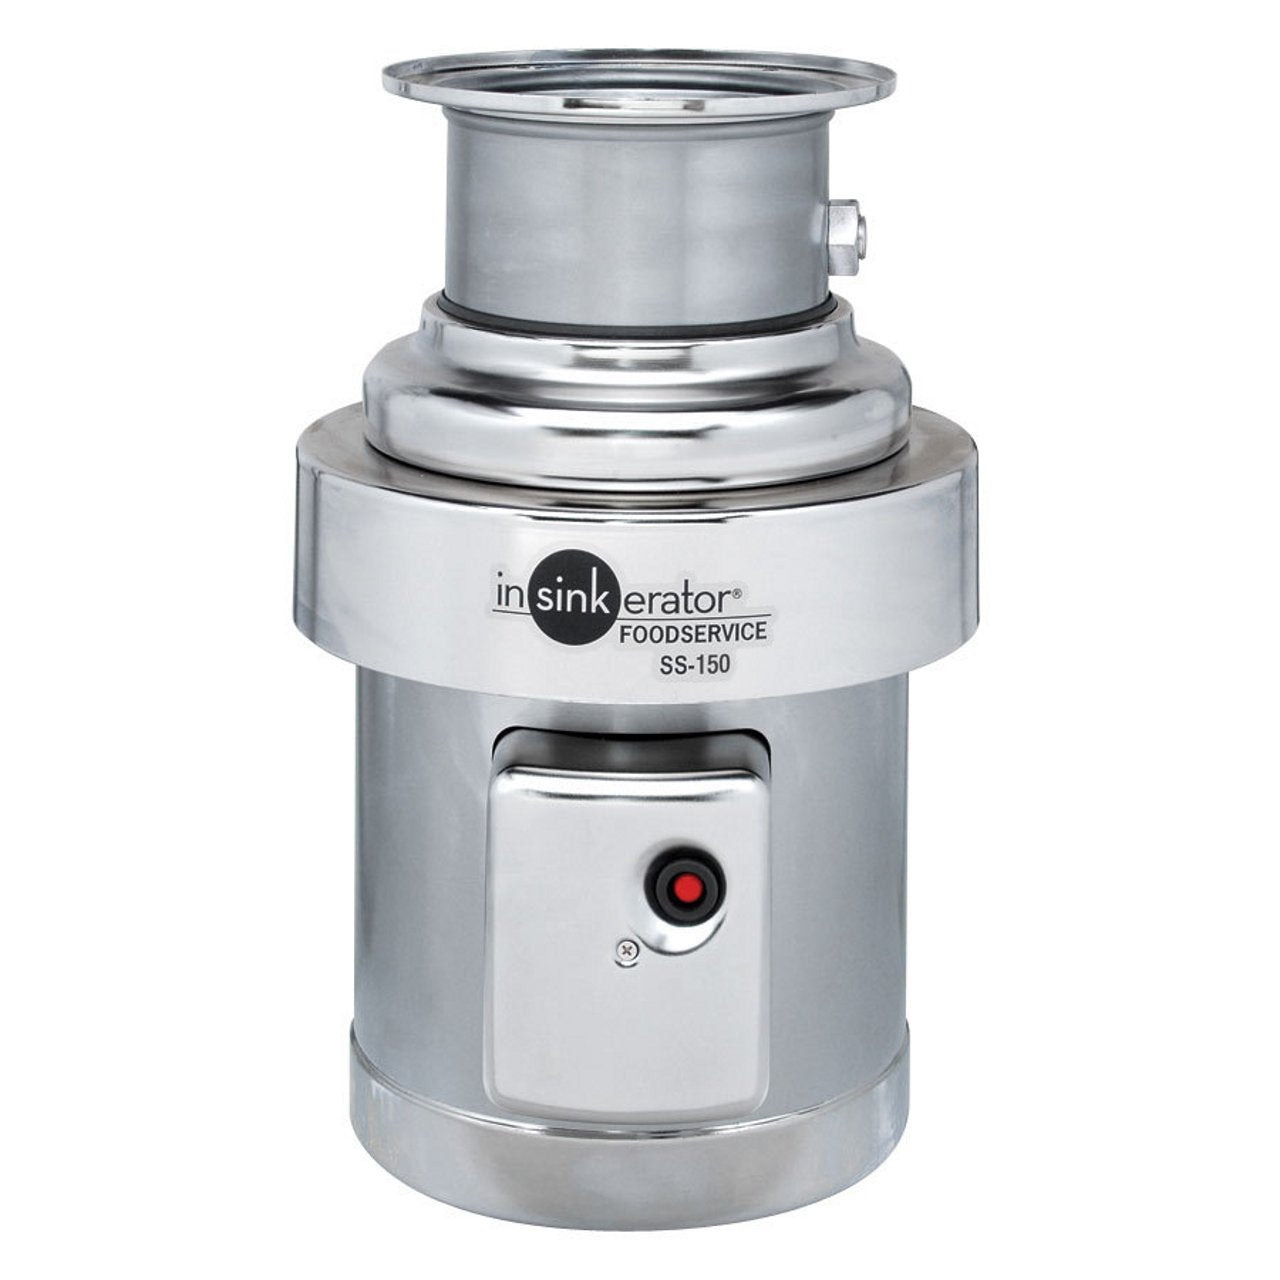 Insinkerator SS-150-36 1 1/2 HP Commercial Garbage Disposal